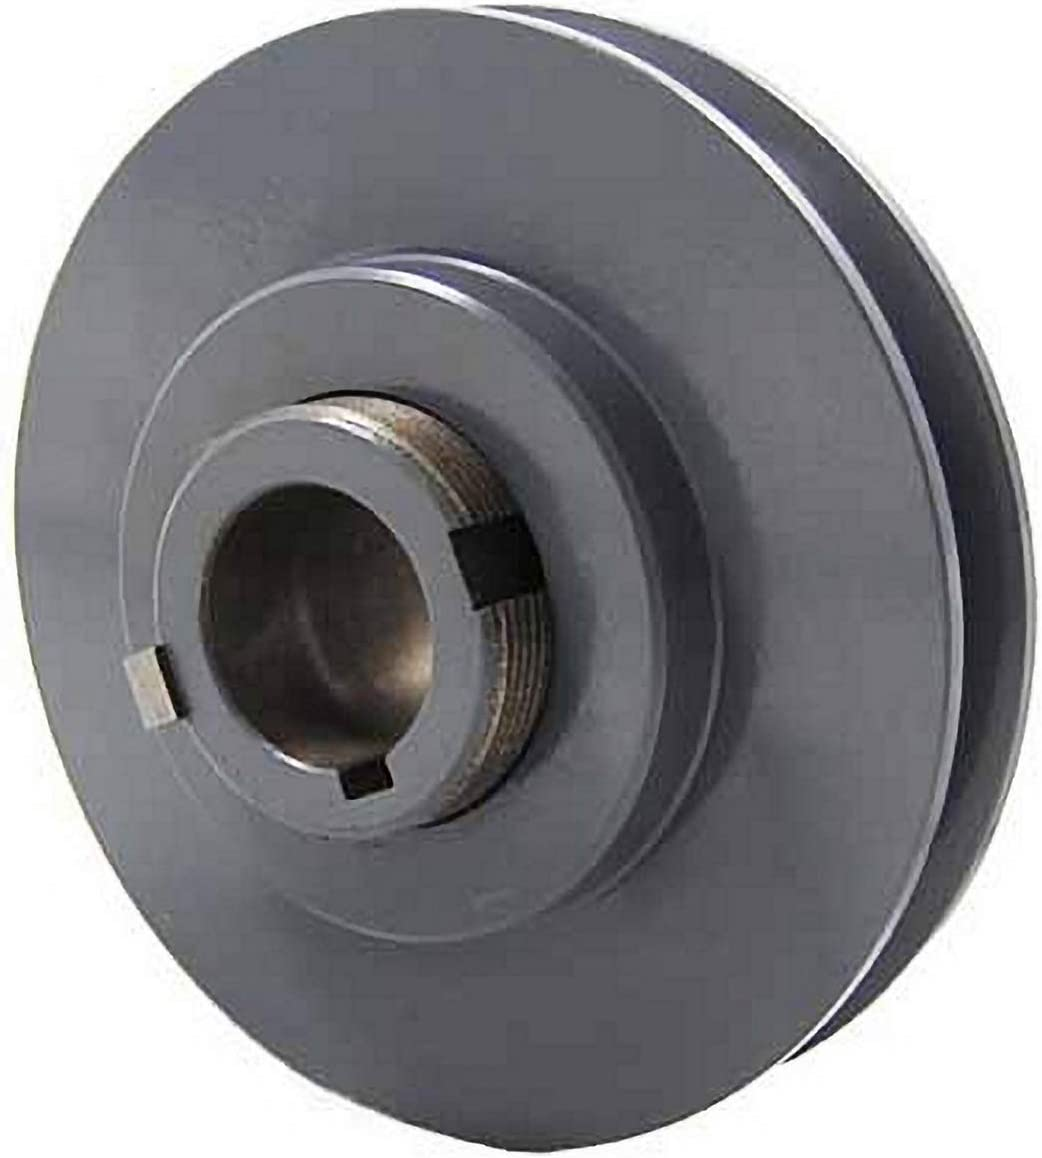 Packard PVP5678 High Superlatite material Variable Pitch Single Groove Belt Pulley 5.35